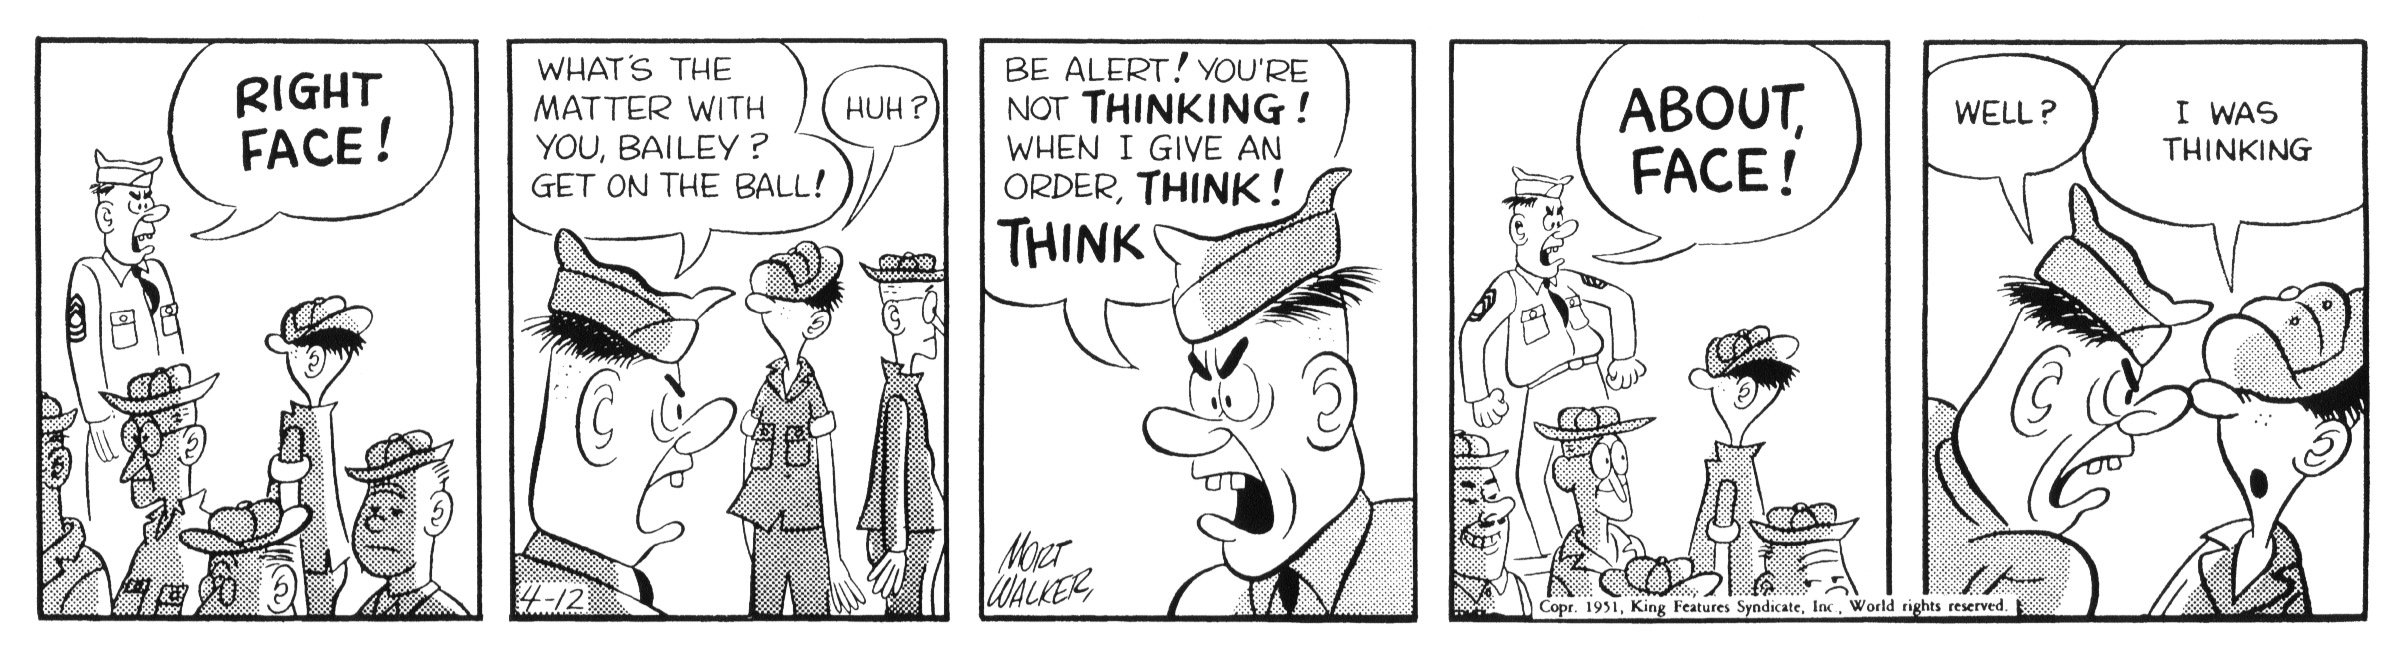 Beetle Bailey daily strip, April 12, 1951.